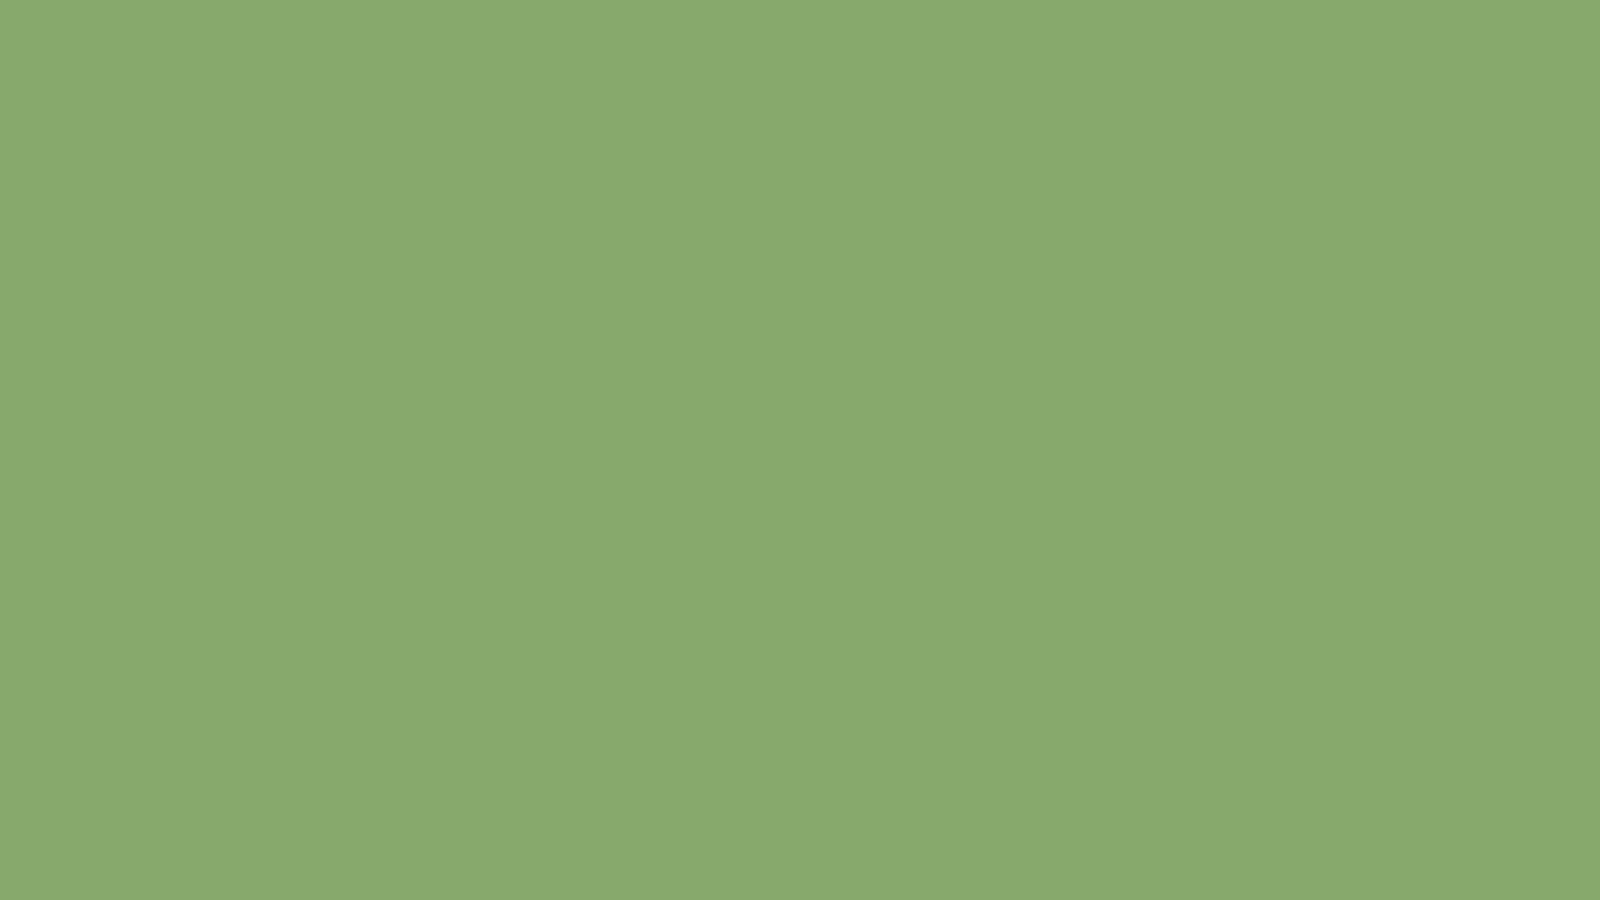 1600x900 Asparagus Solid Color Background